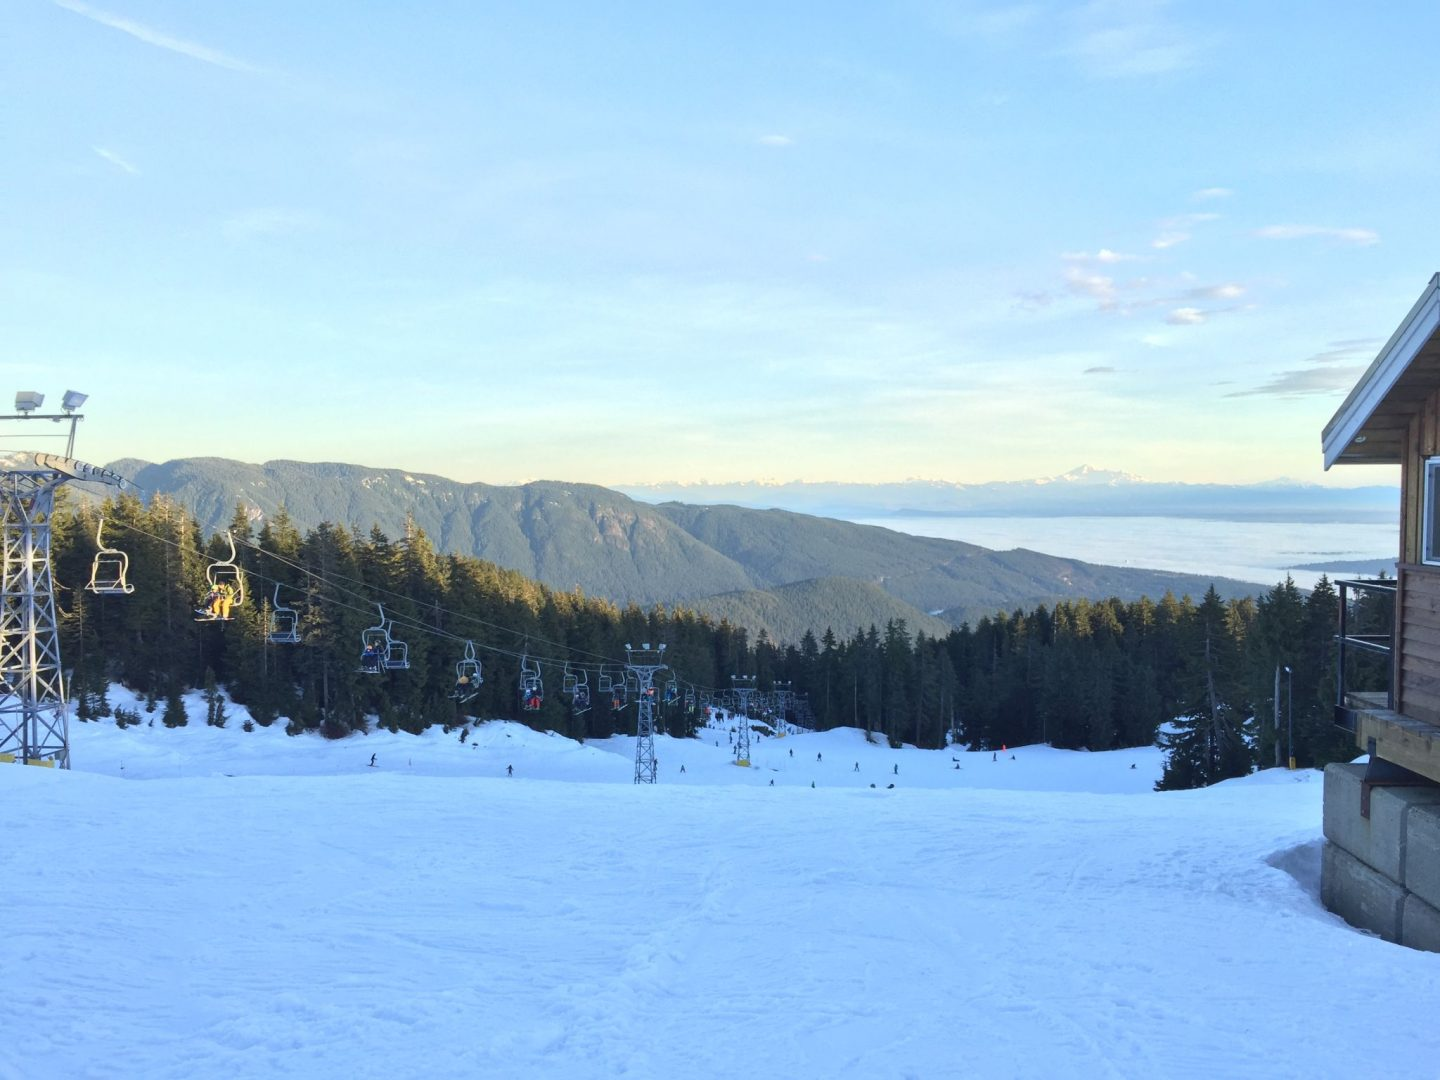 Skiing on Mount Seymour, Vancouver